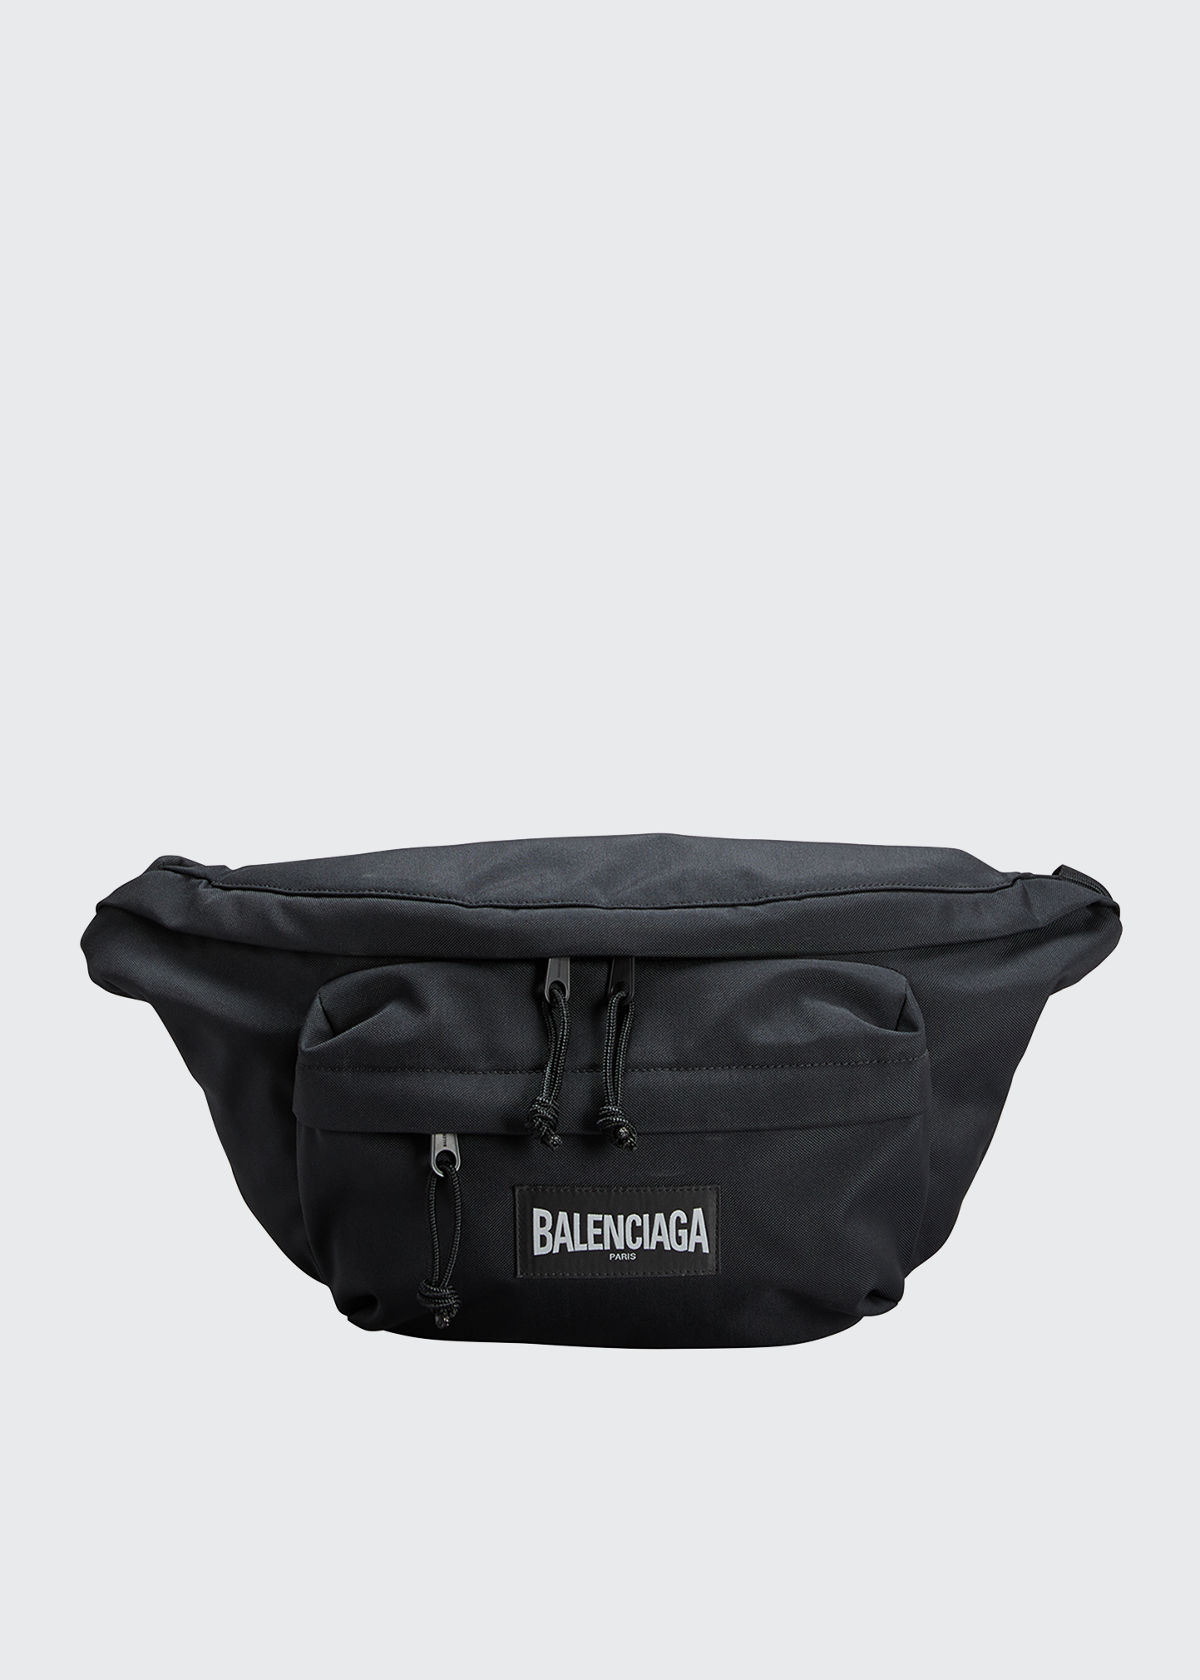 Balenciaga MEN'S OVERSIZED NYLON BELT BAG